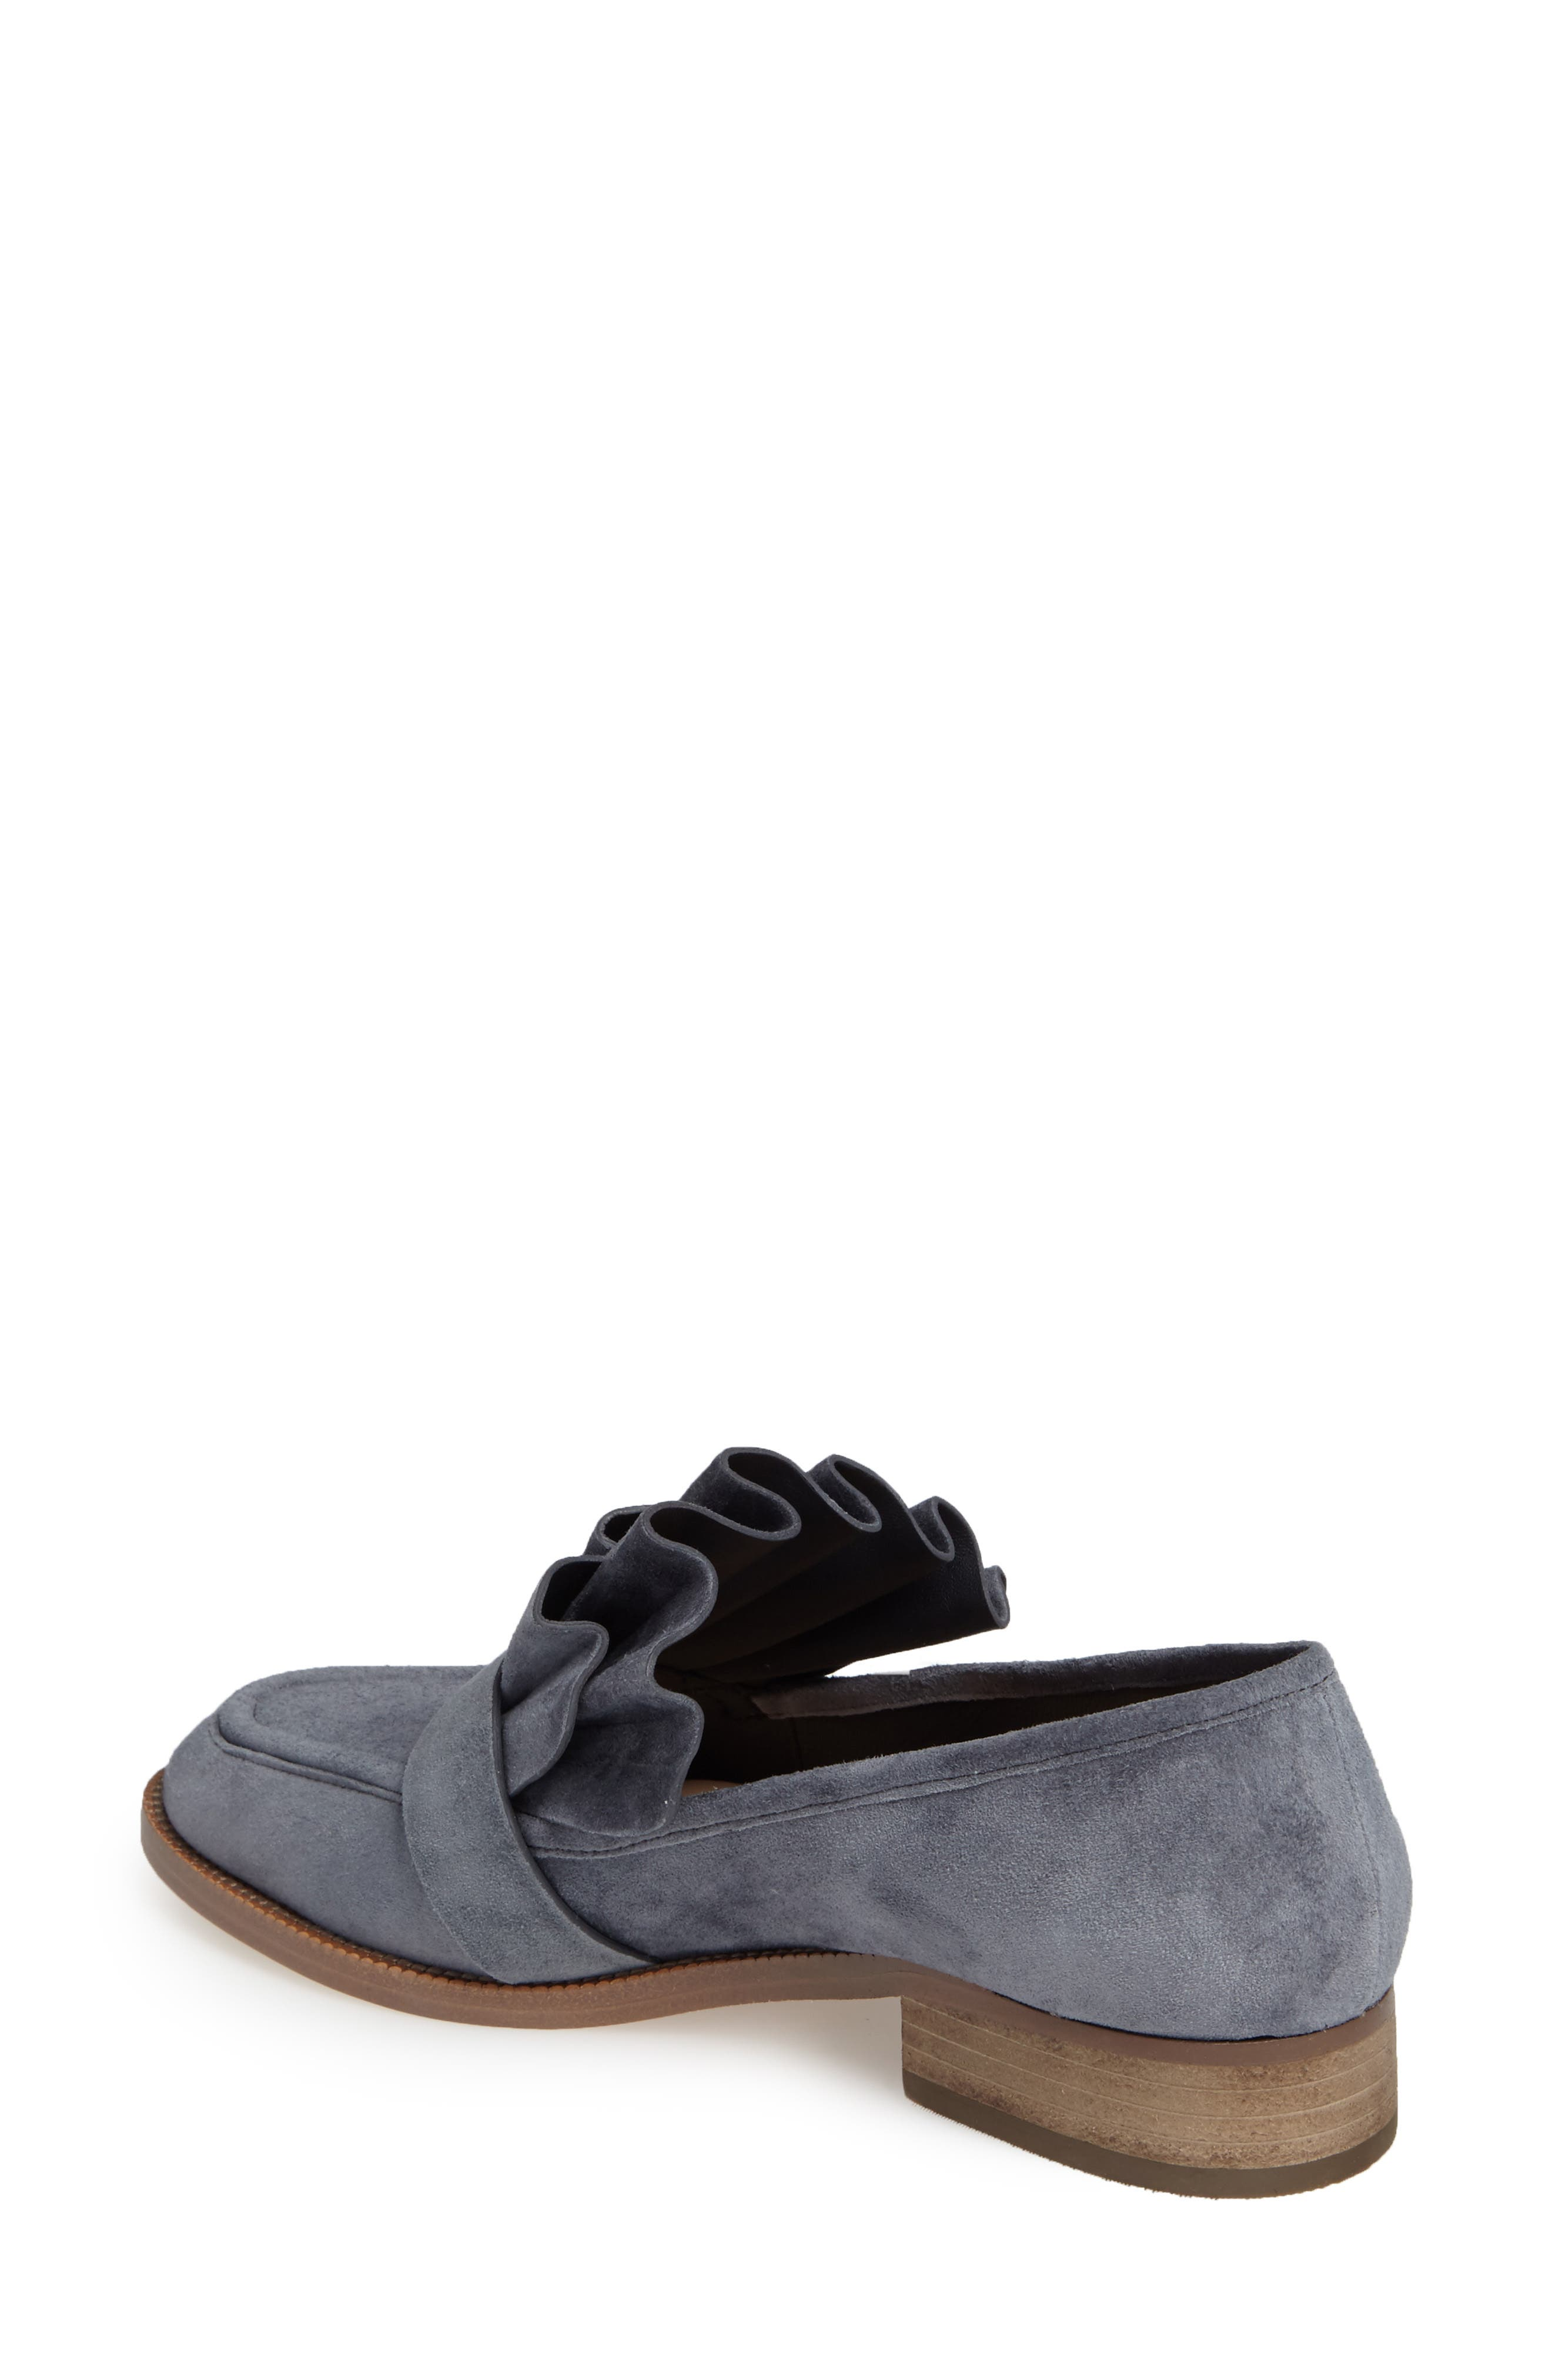 Alternate Image 2  - Pour la Victoire Tenley Ruffled Loafer (Women)